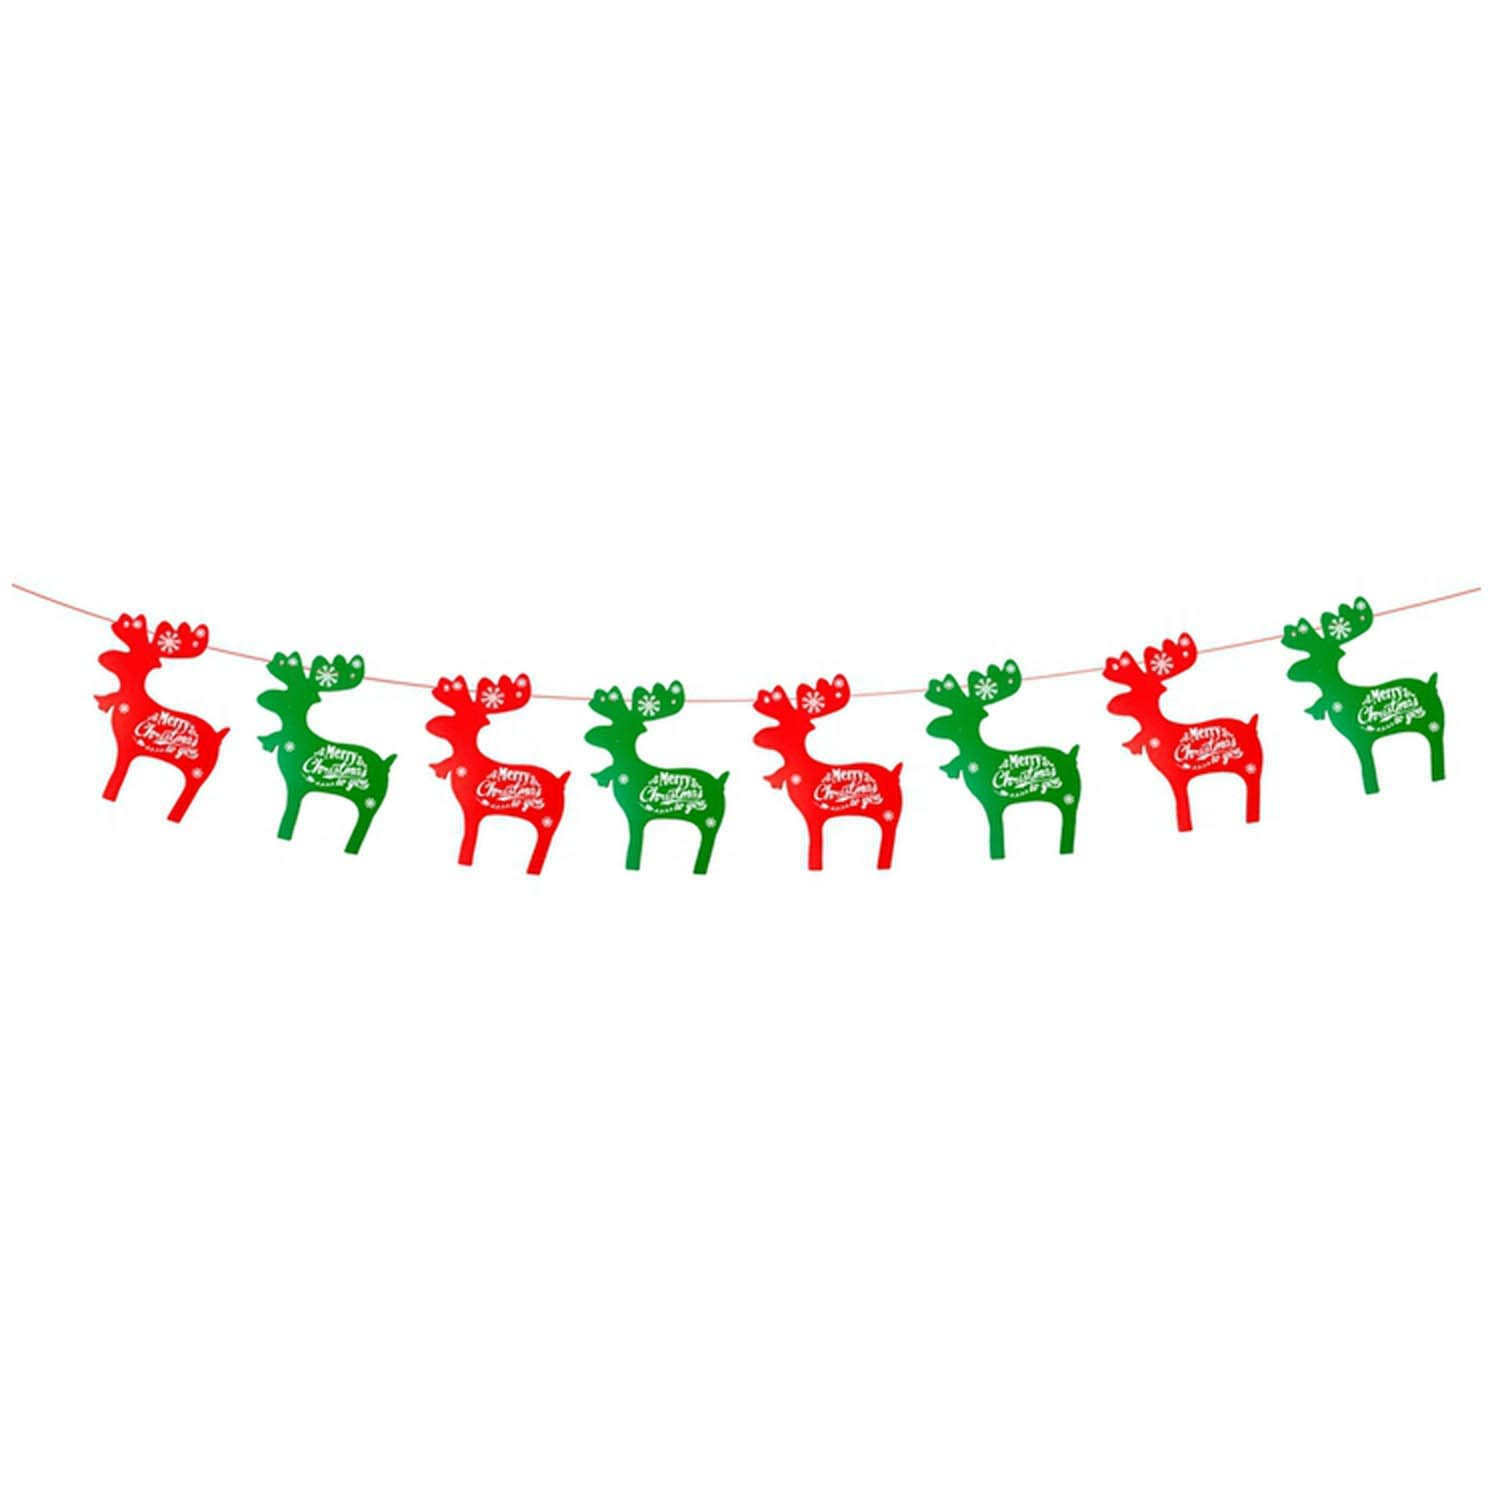 Noon-Sunshine decorative-plaques Merry Christmas Bannerar Christmas Decorations for Home Xmas Party Santa Claus Bell Flag Garlands,Christmas Banner 4